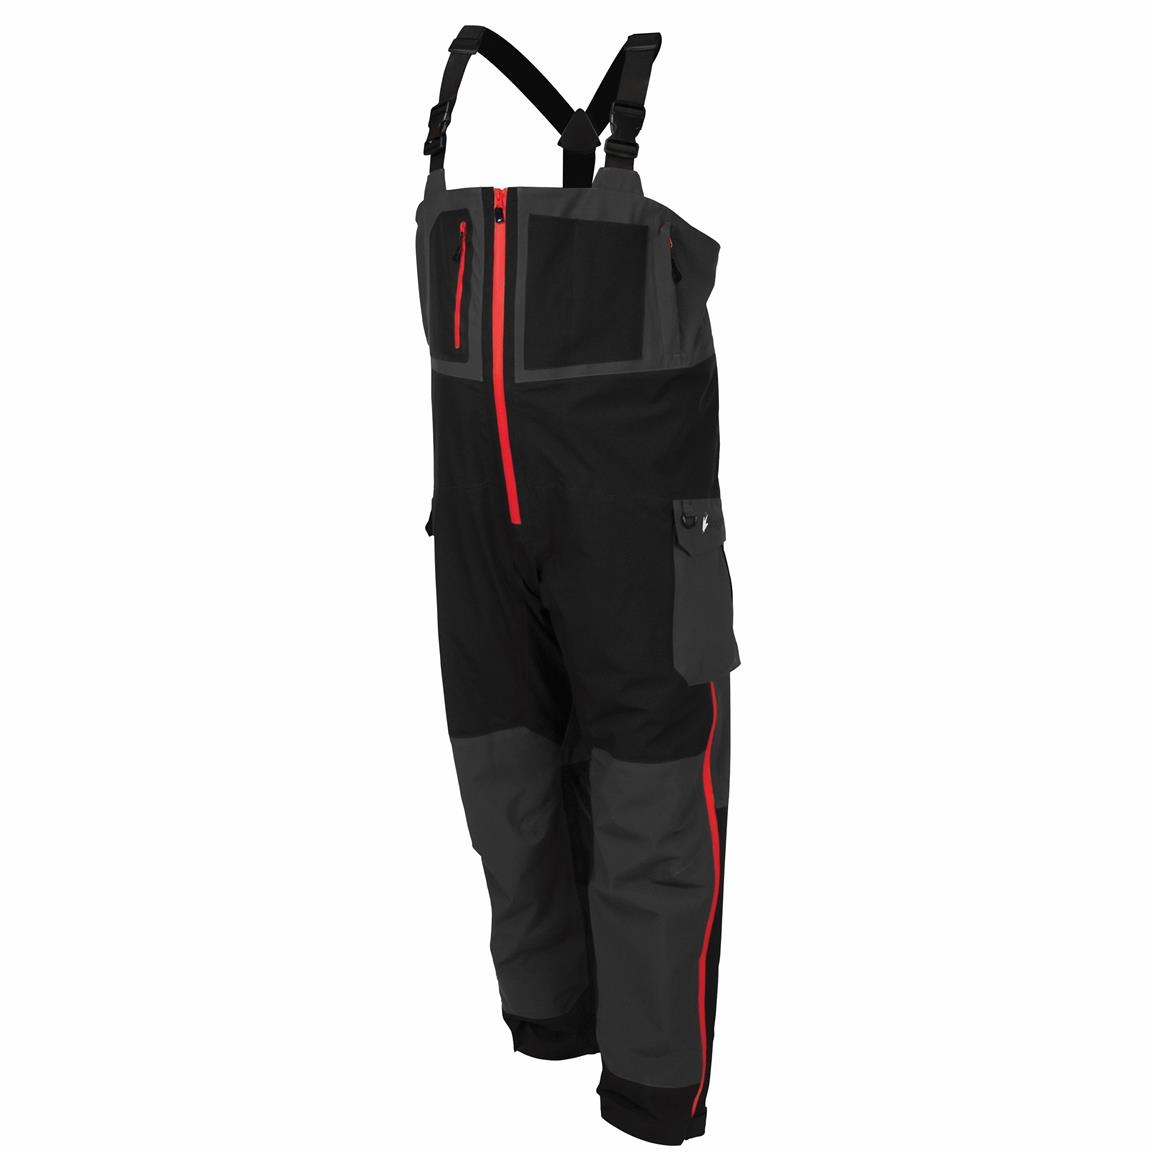 frogg toggs Pilot Guide Bibs, Black / Charcoal